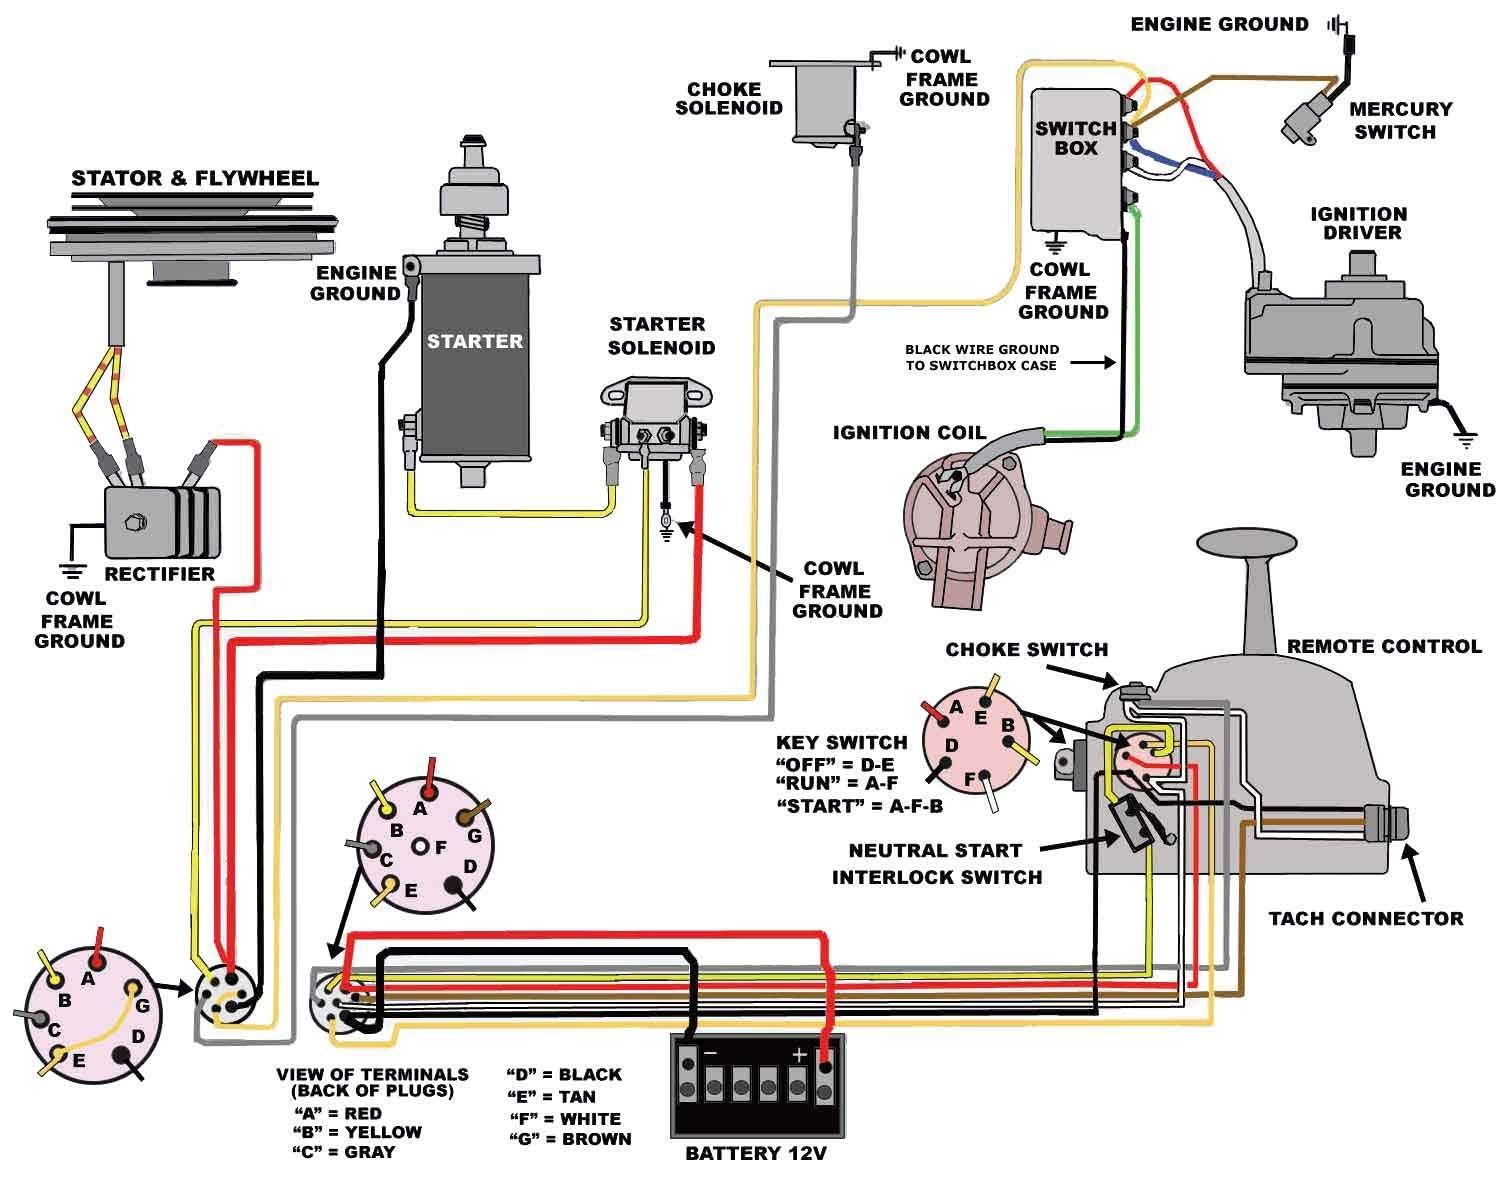 Astounding Mercruiser Ignition Switch Wiring Diagram Motherwill For Wiring Database Wedabyuccorg